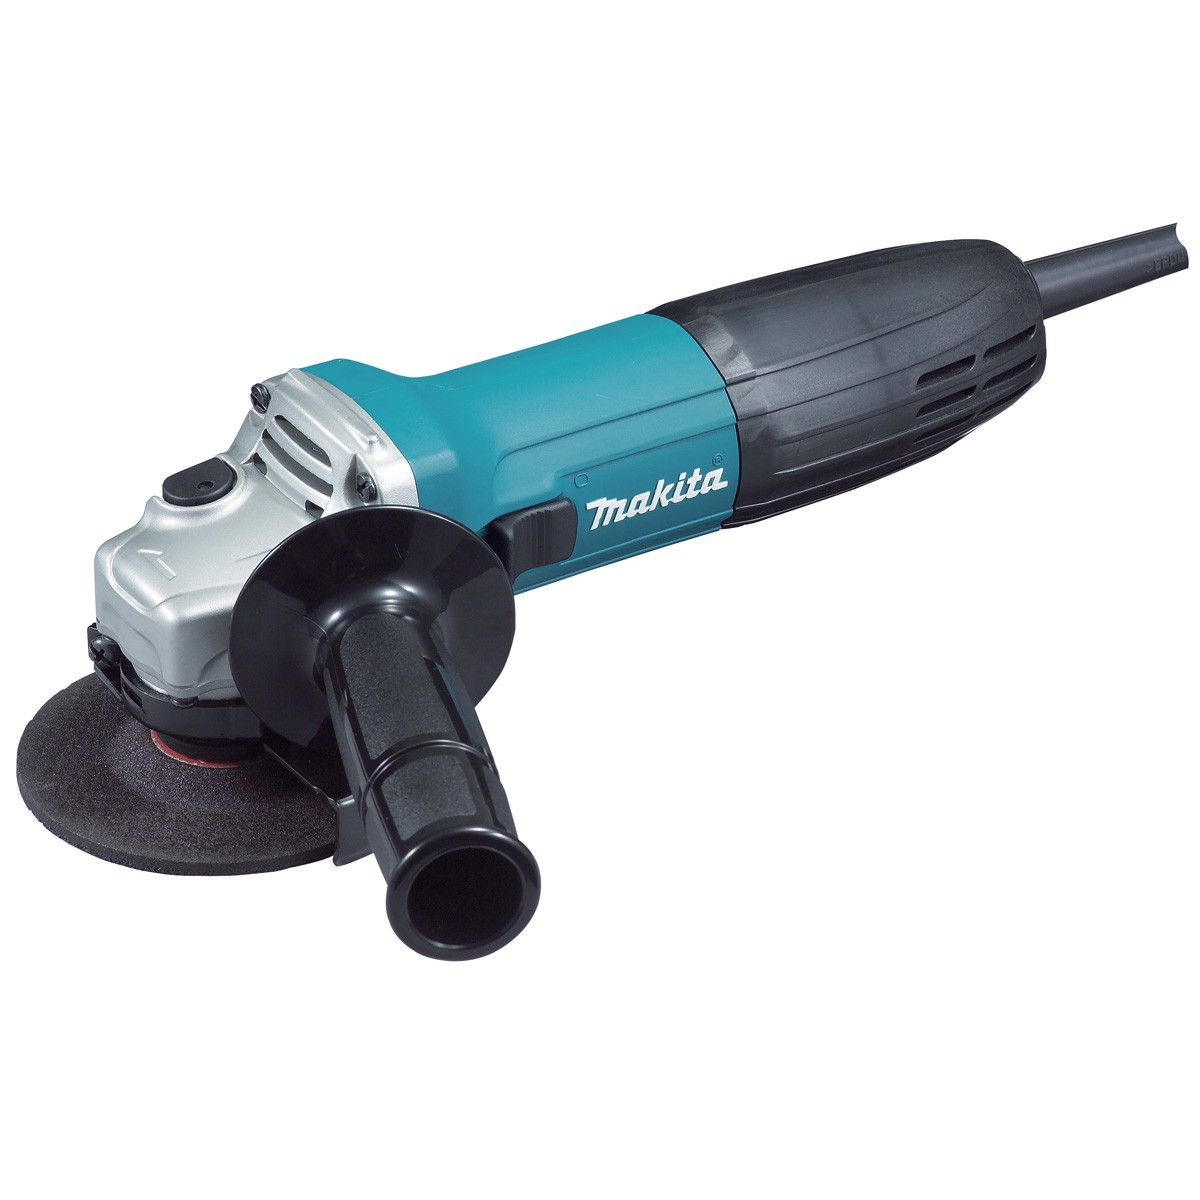 Makita GA4030R 100mm Slim Angle Grinder 720W with Anti-Restart